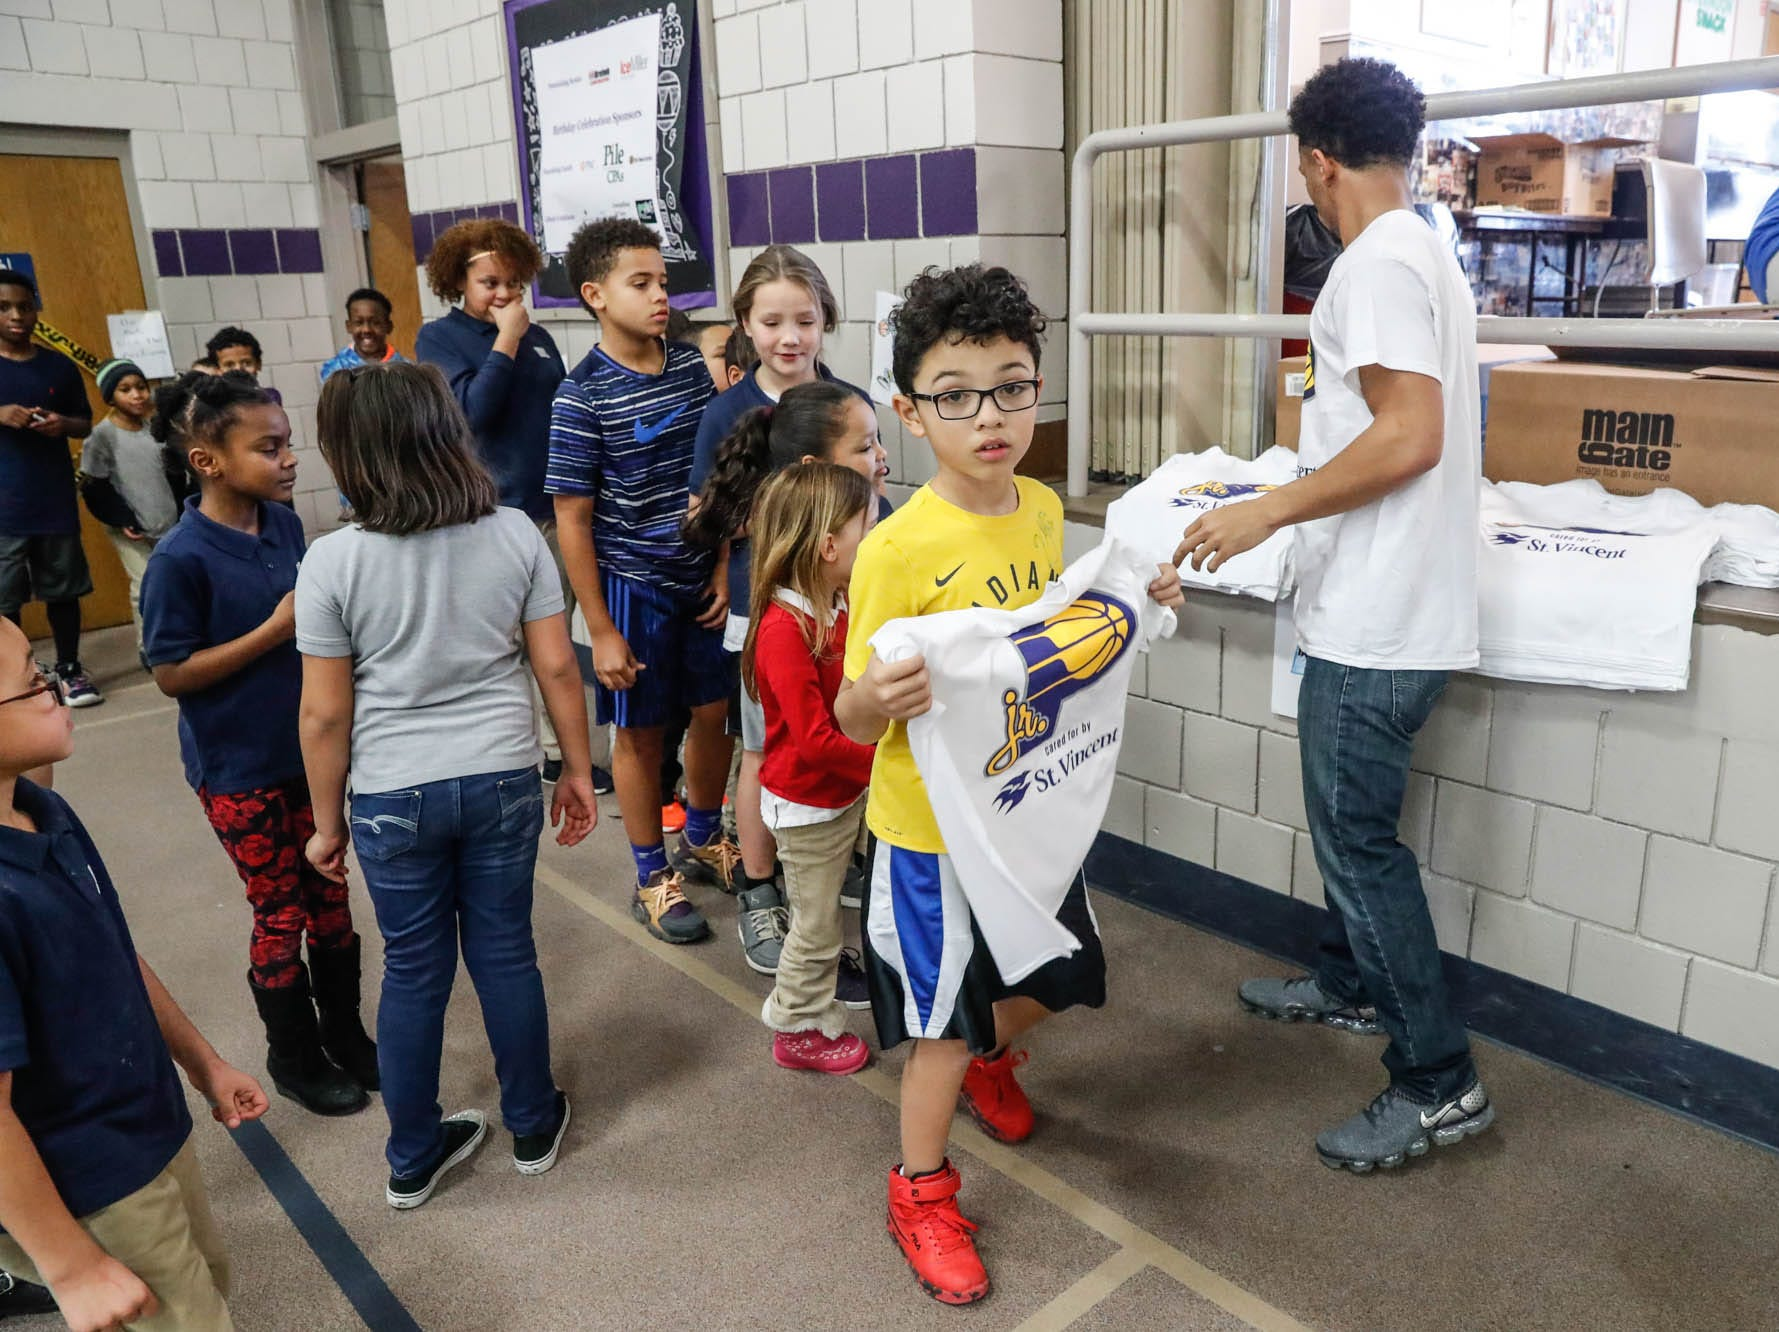 Children are given free Indiana Pacers shirts during a Jr. Pacers Clinic at Concord Neighborhood Center, on Monday, Jan. 14, 2019.